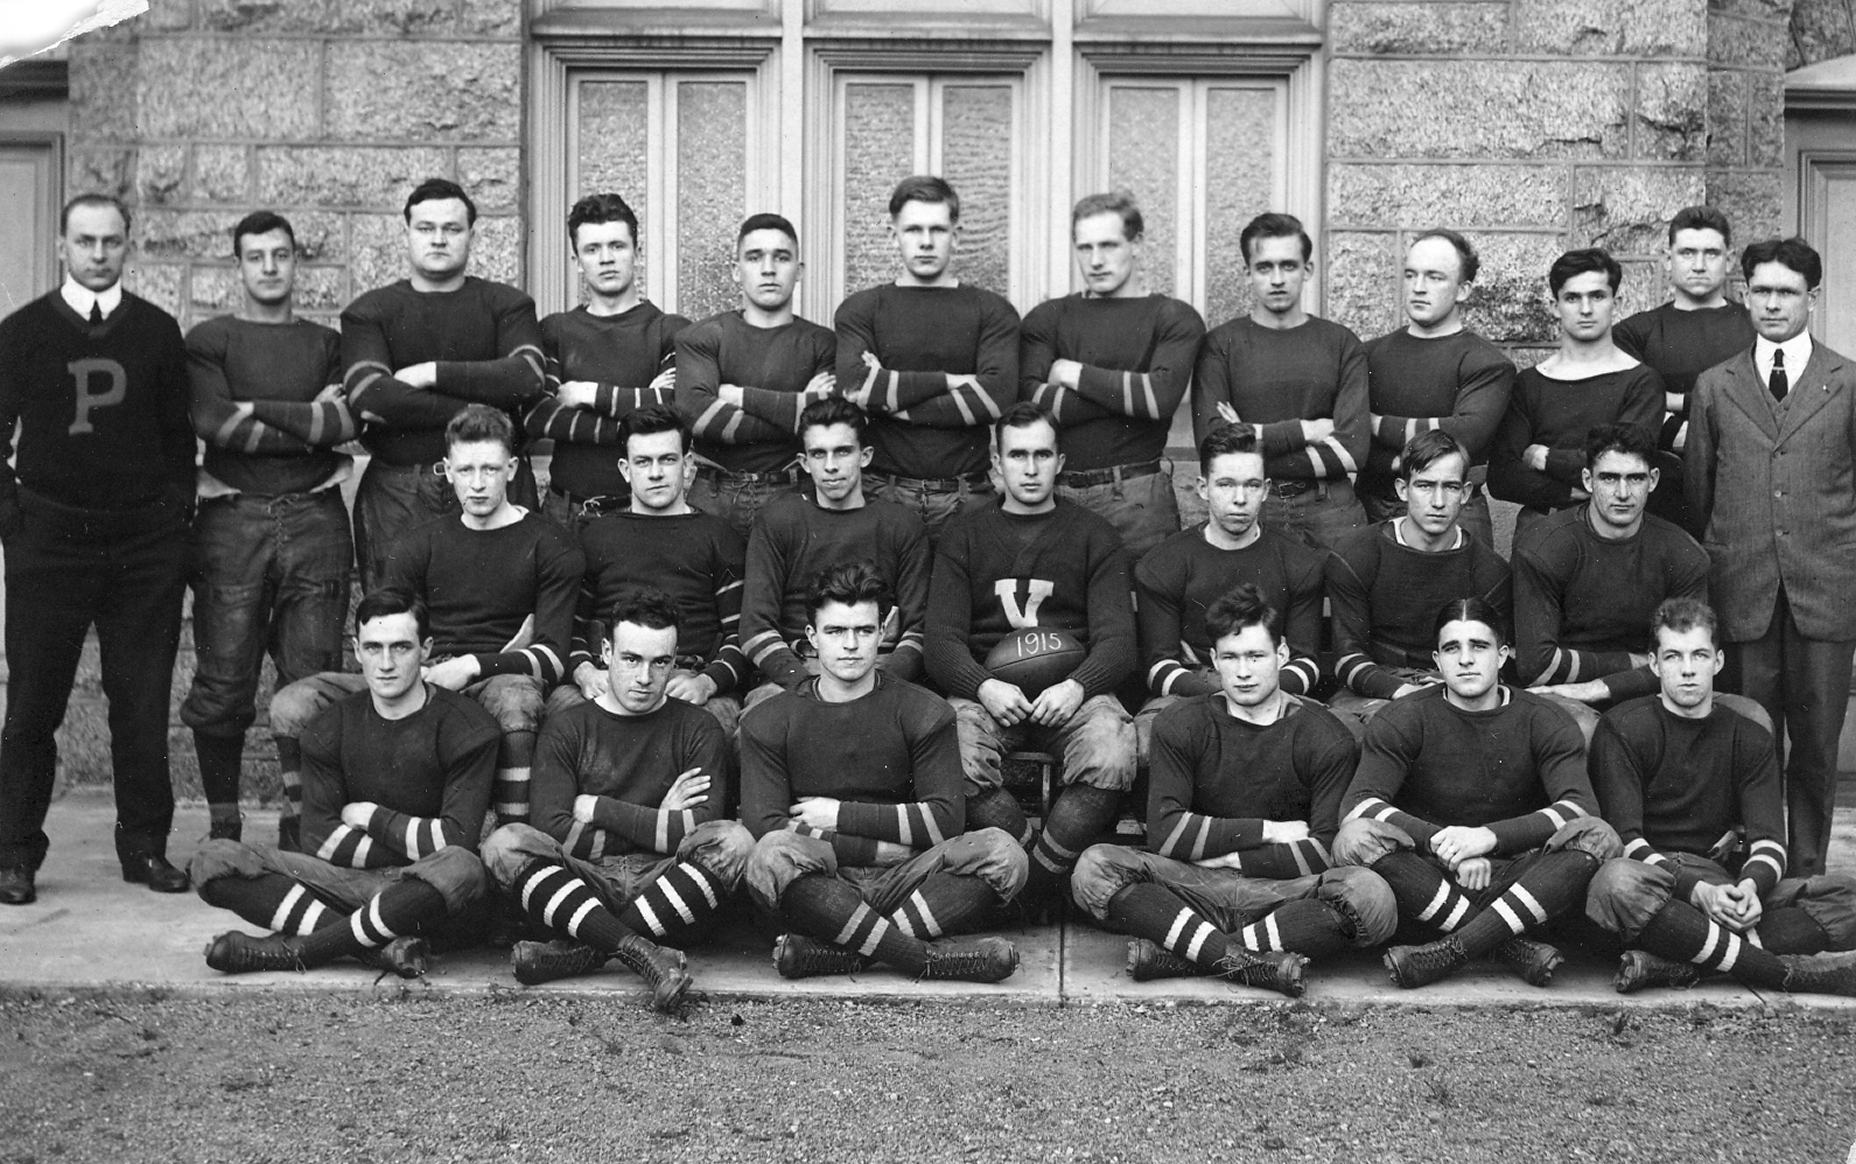 Villanova football team, 1915